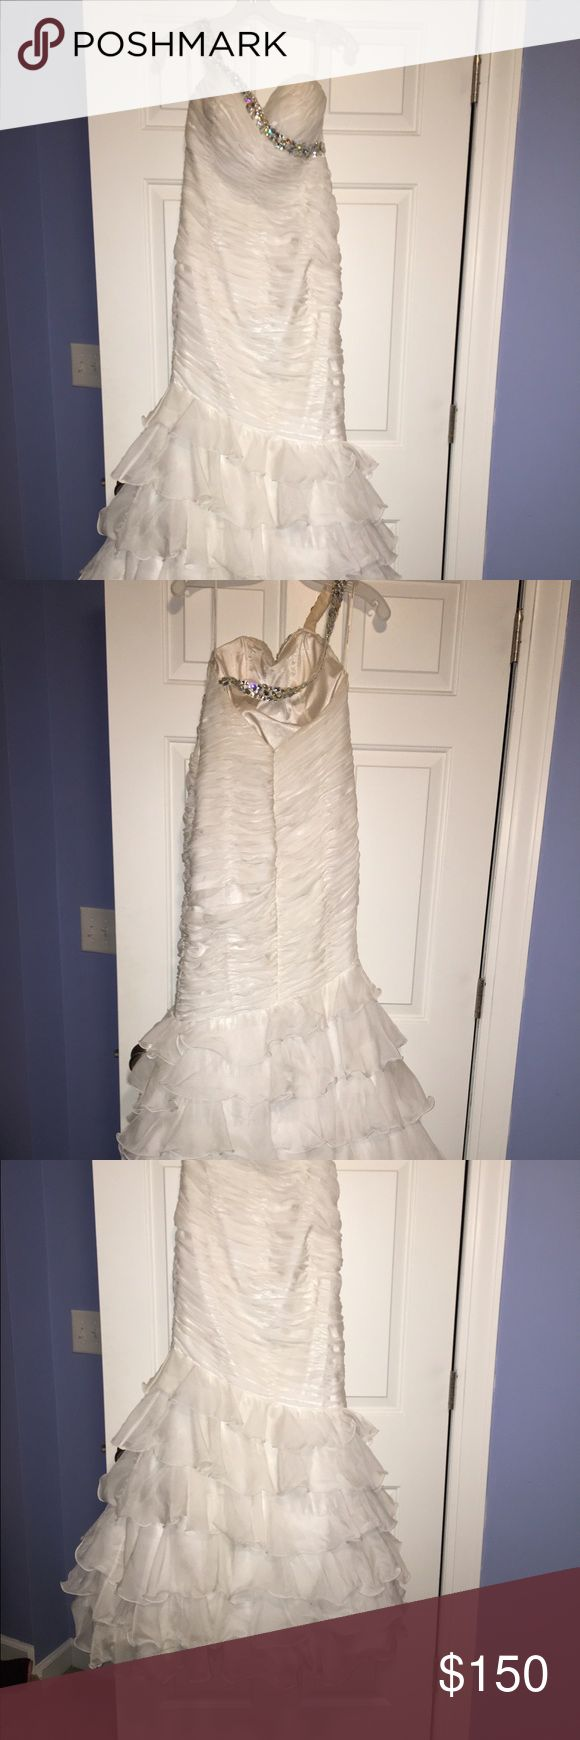 Alyce Prom Dress Only worn once. Great condition. Nothing is wrong. On the strap the inside has a little of the spray on tan rubbed on it but you wouldn't see it unless the dress is off. Need gone ASAP! Alyce Paris Dresses Prom